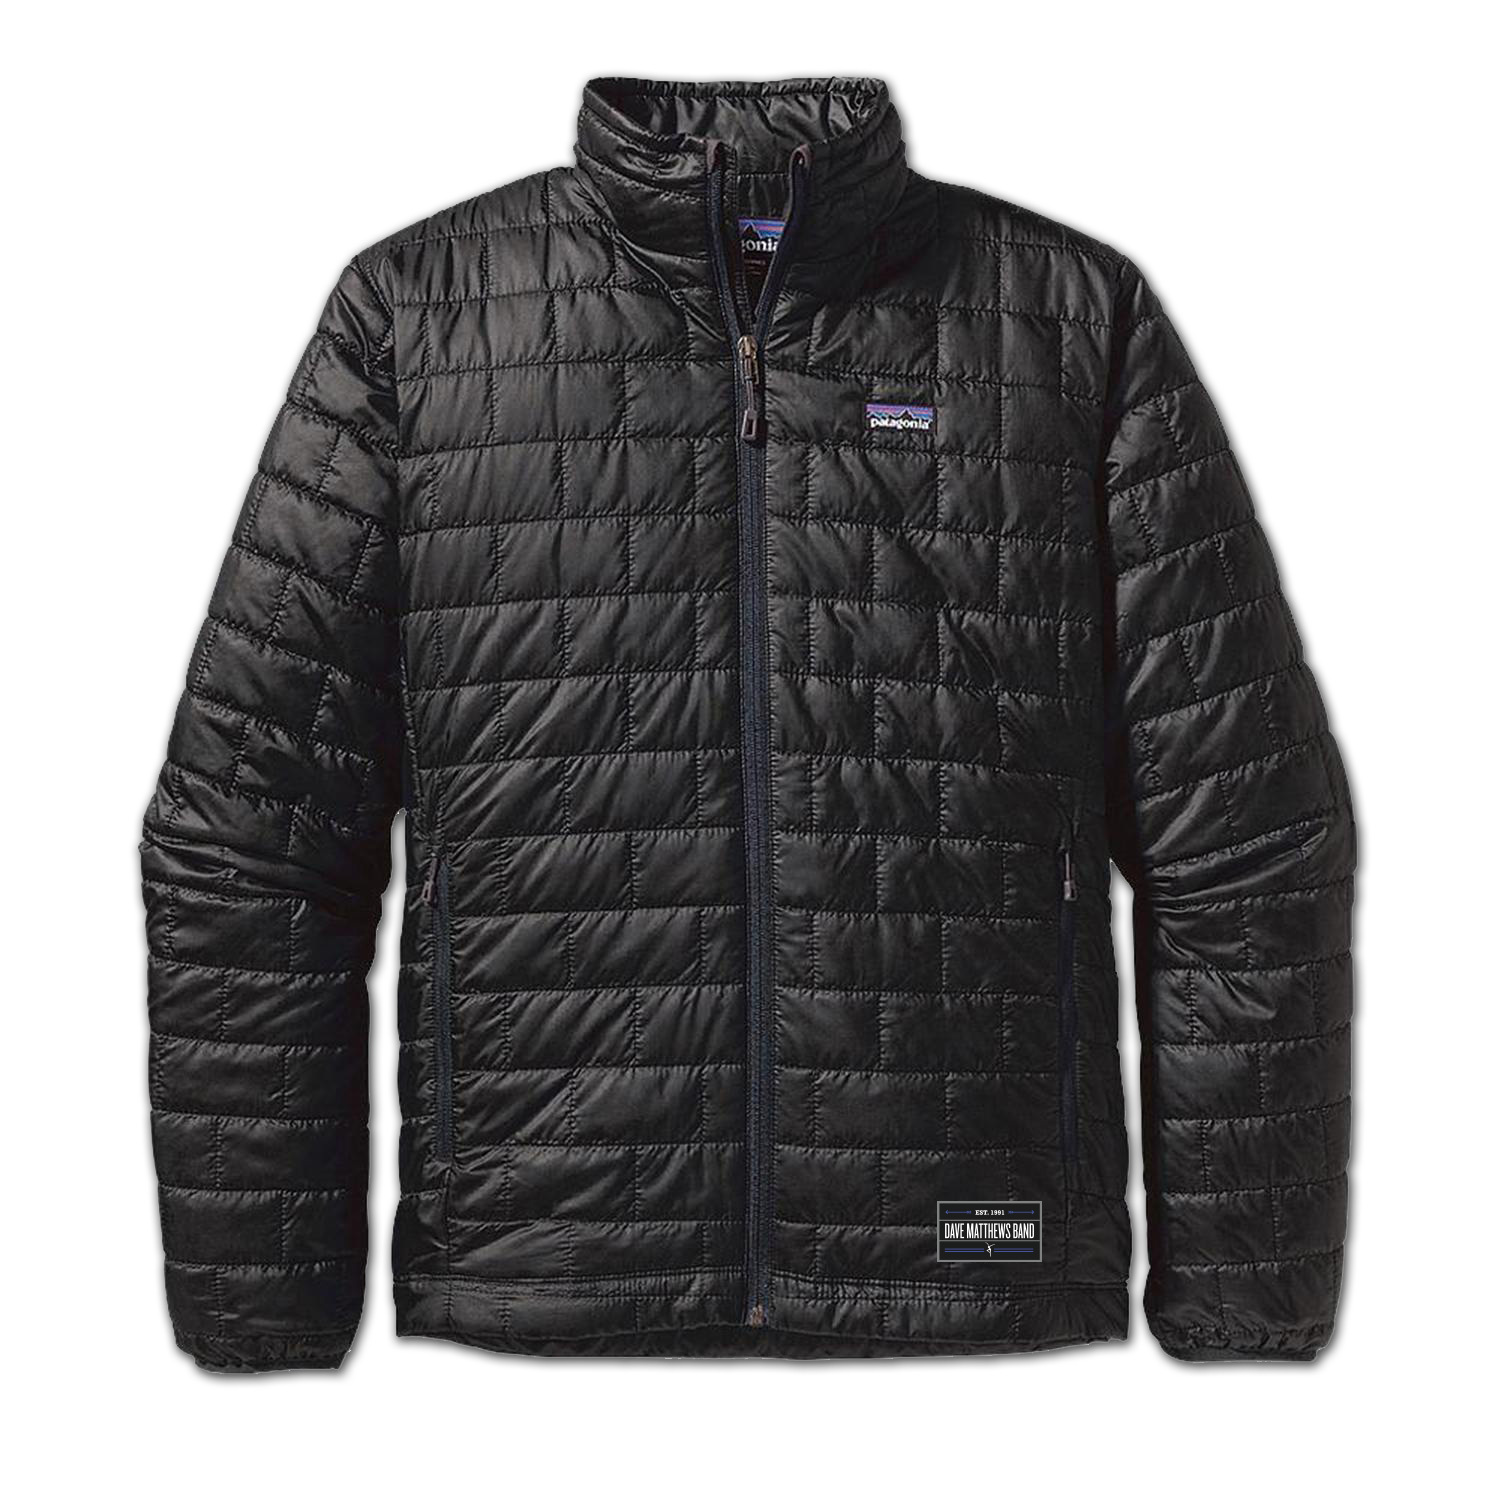 DMB Patagonia Men's Nano Puff Jacket